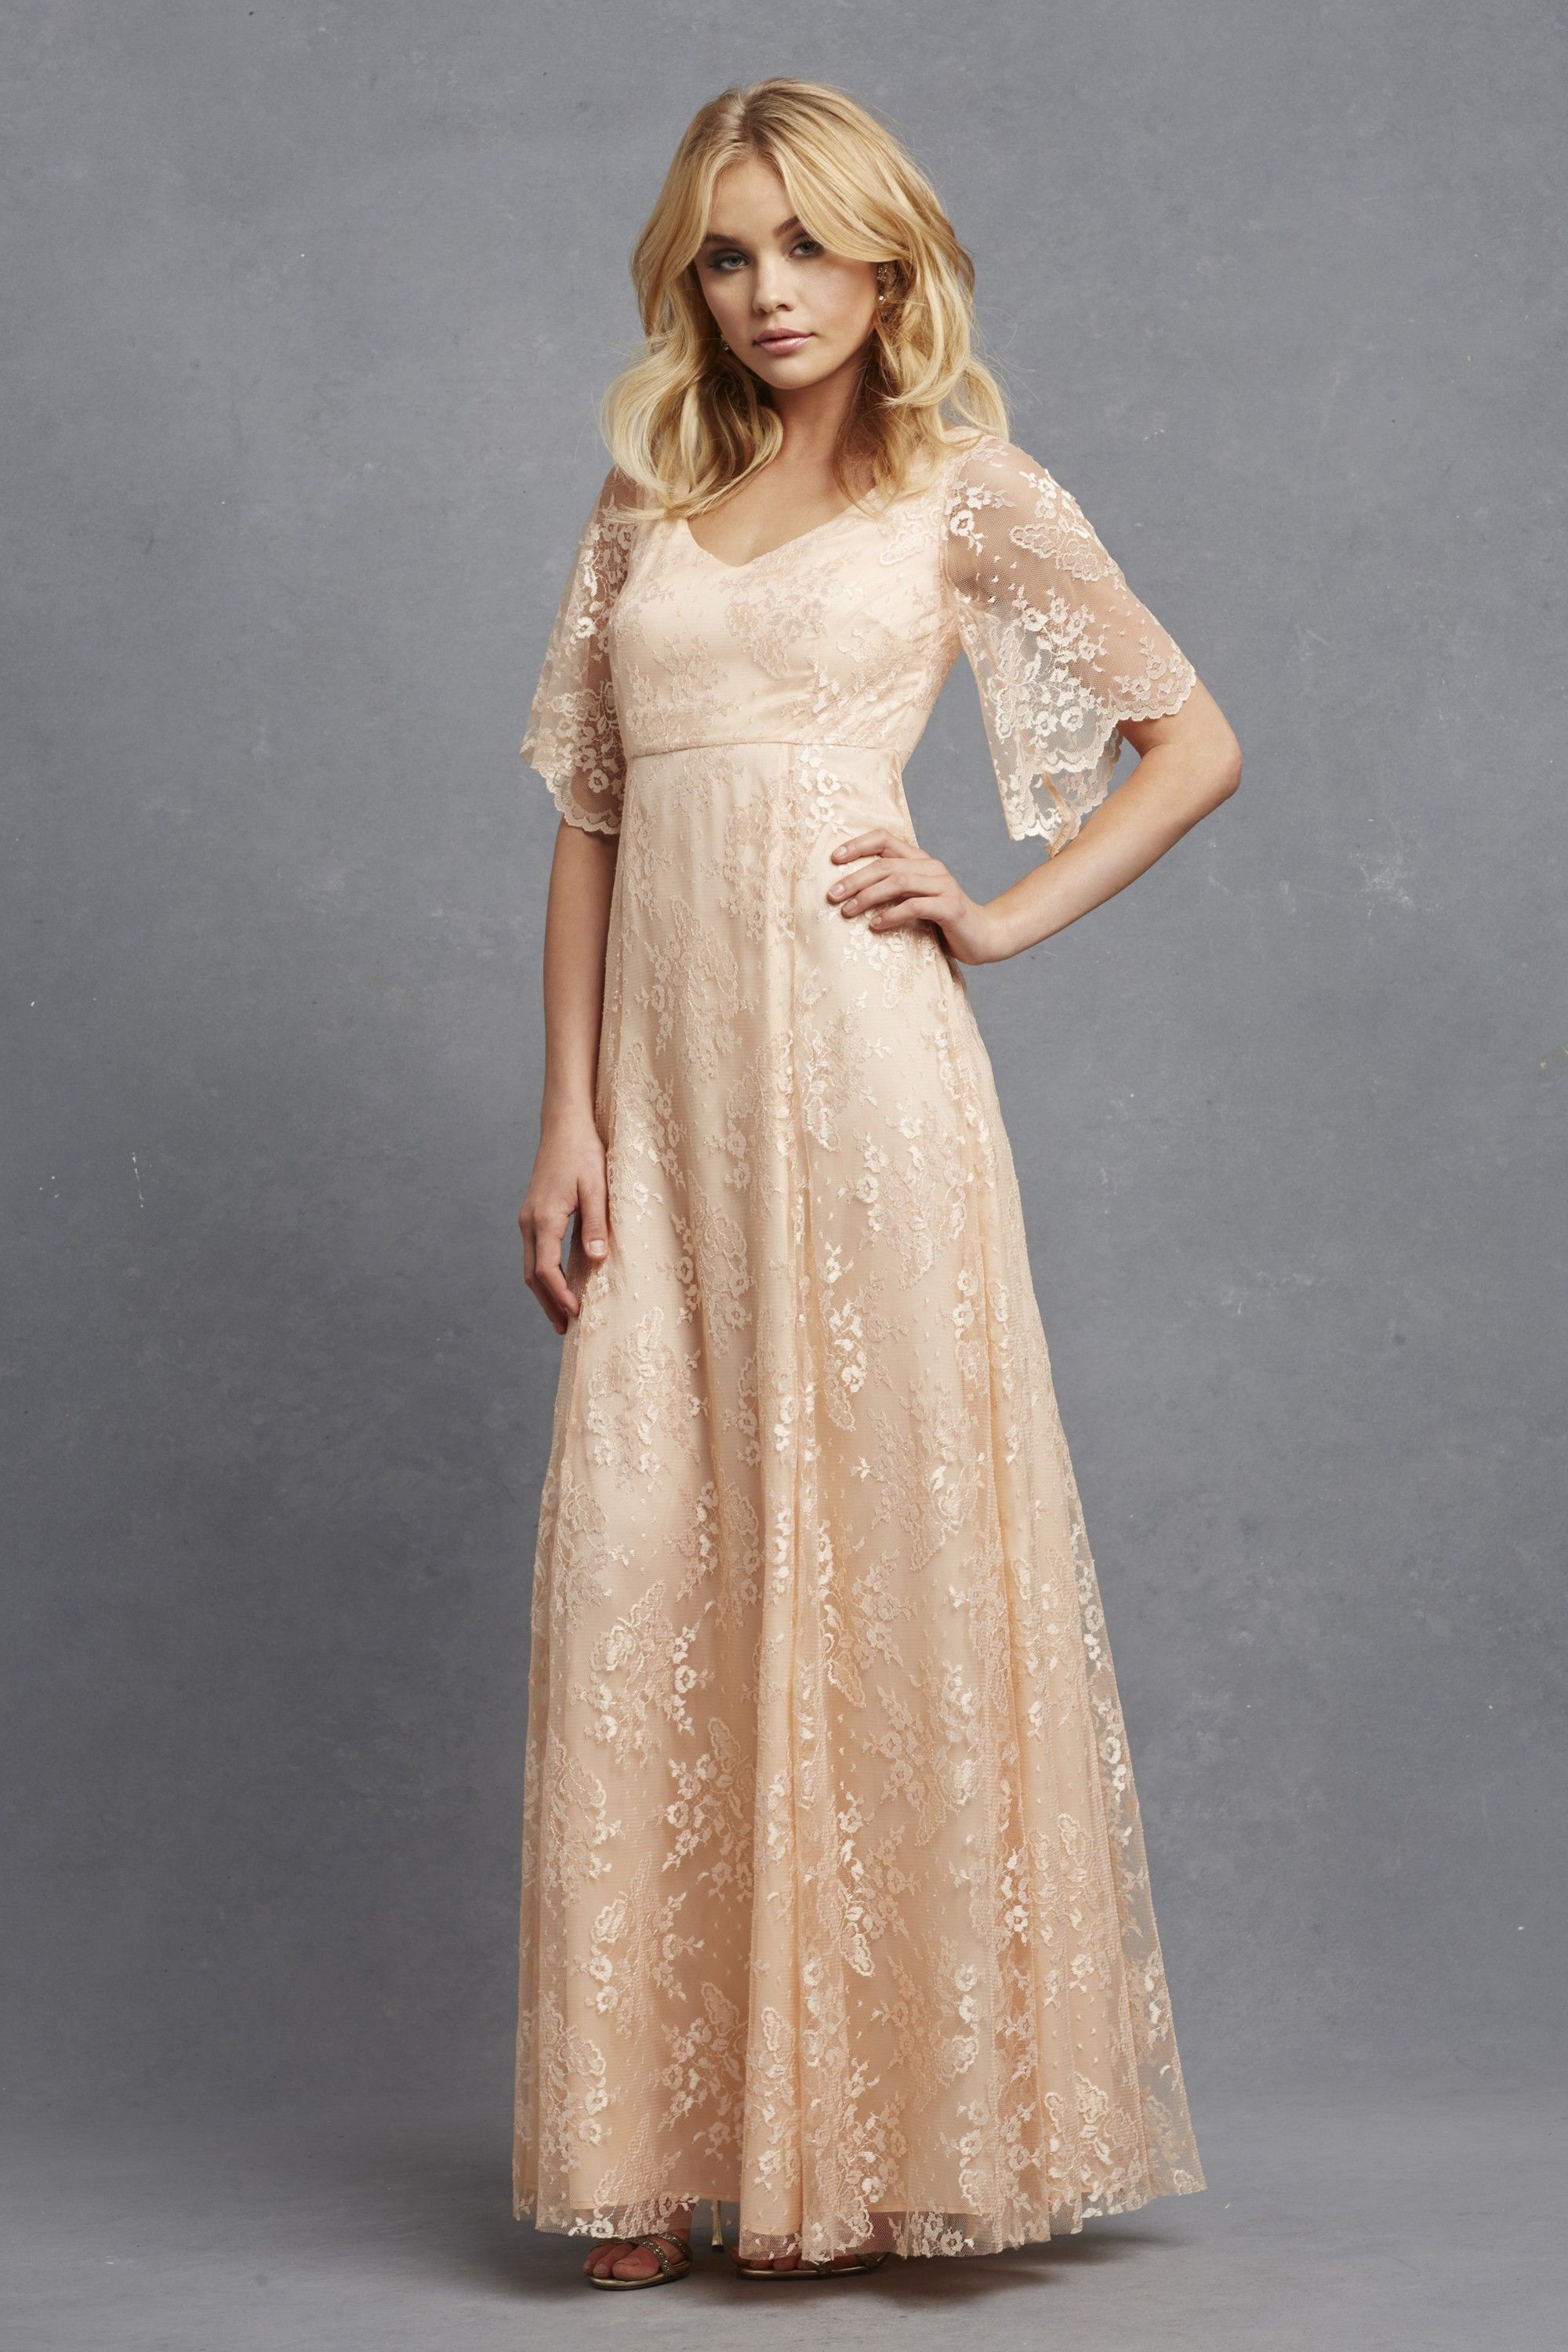 Madeline apricot donna morgan wedding ideas for mom